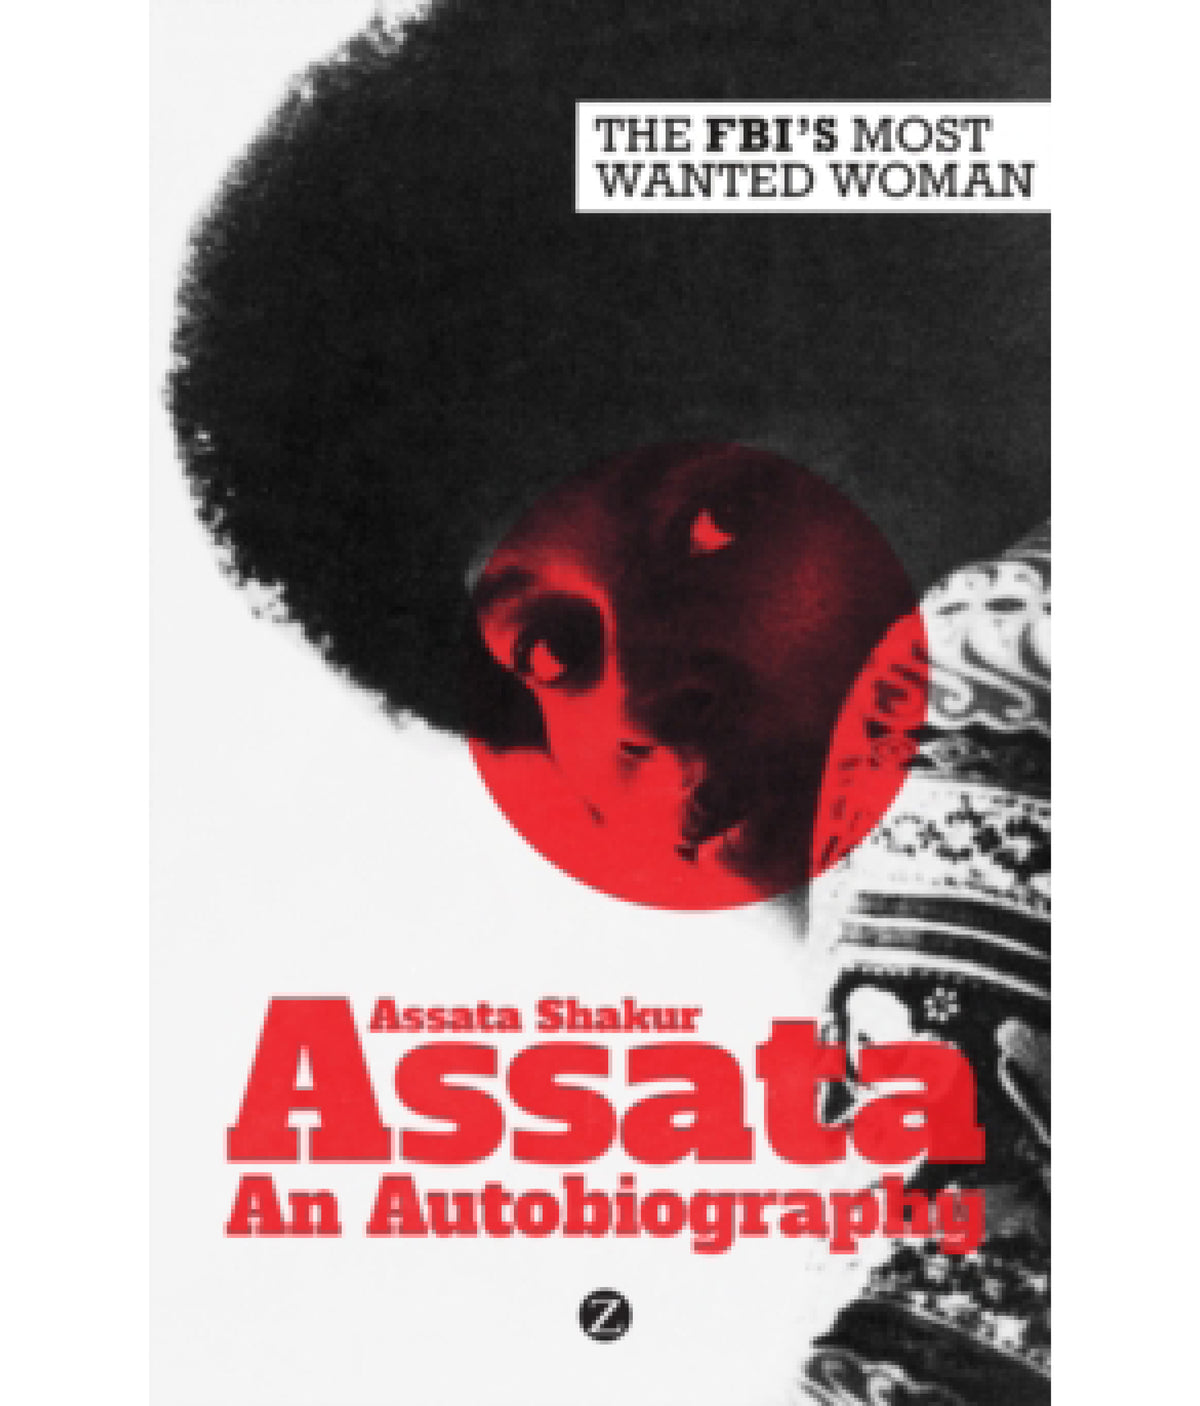 Assata: An Autobiography by Assata Sakur